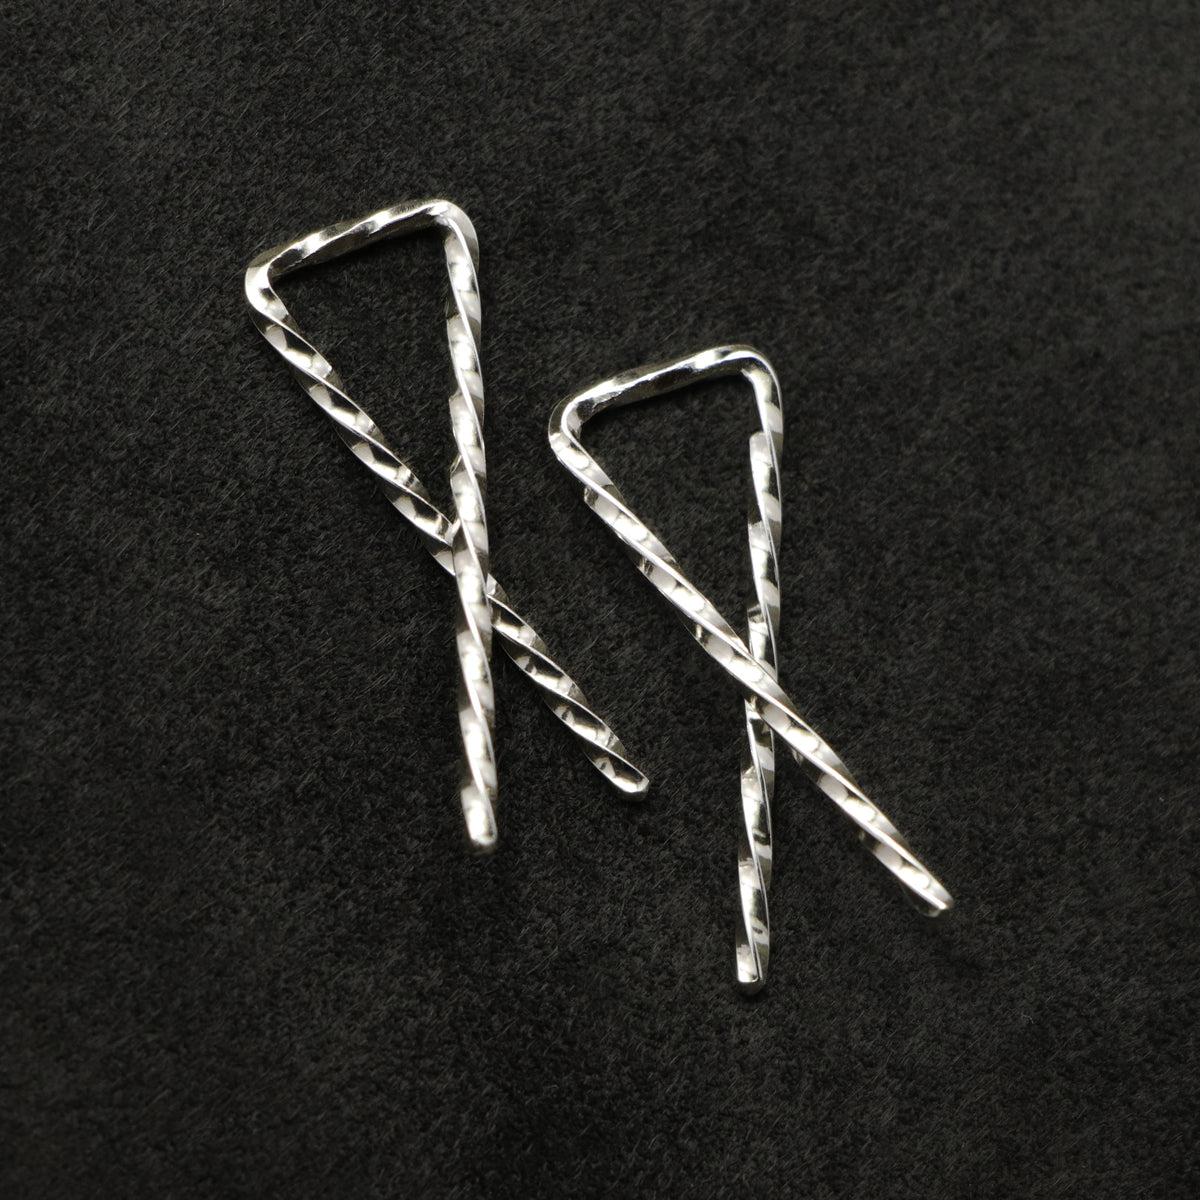 Detail view of Sibling Ribbons in Sterling Silver earring representing we are all brothers and sisters by Caps Brothers